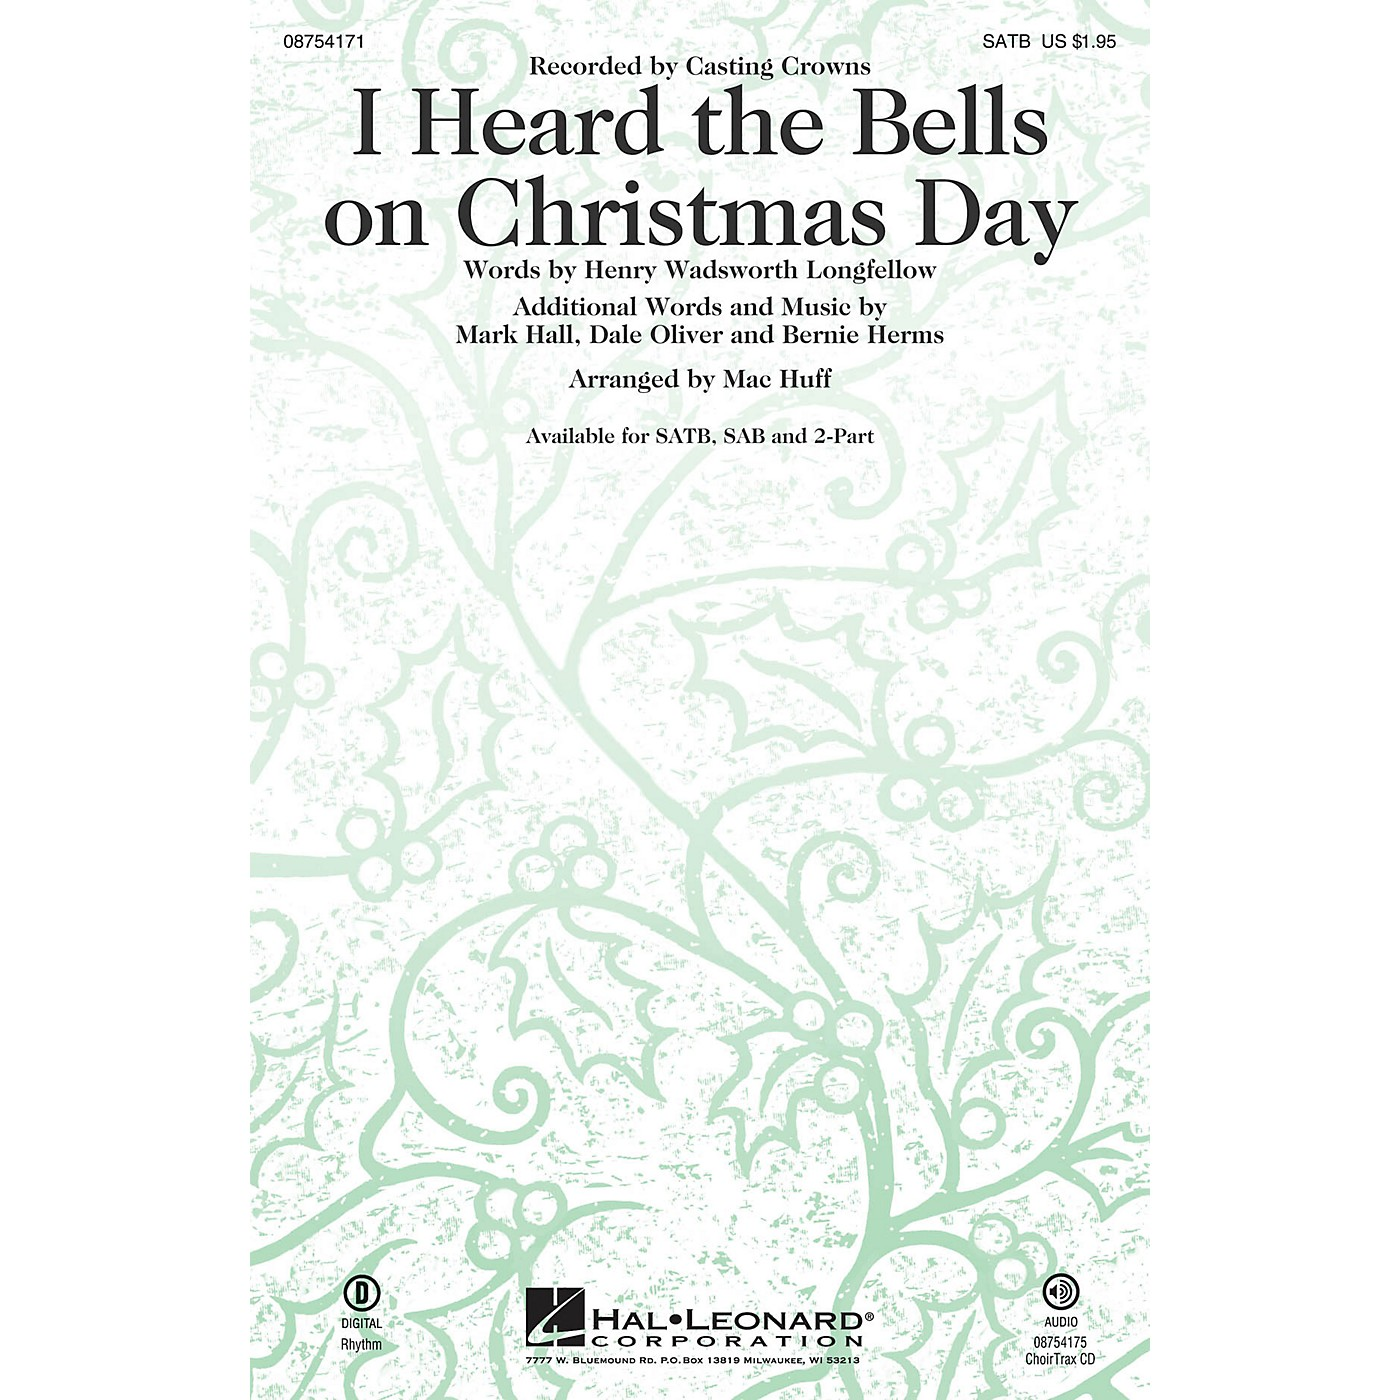 Hal Leonard I Heard the Bells on Christmas Day SATB by Casting Crowns arranged by Mac Huff thumbnail